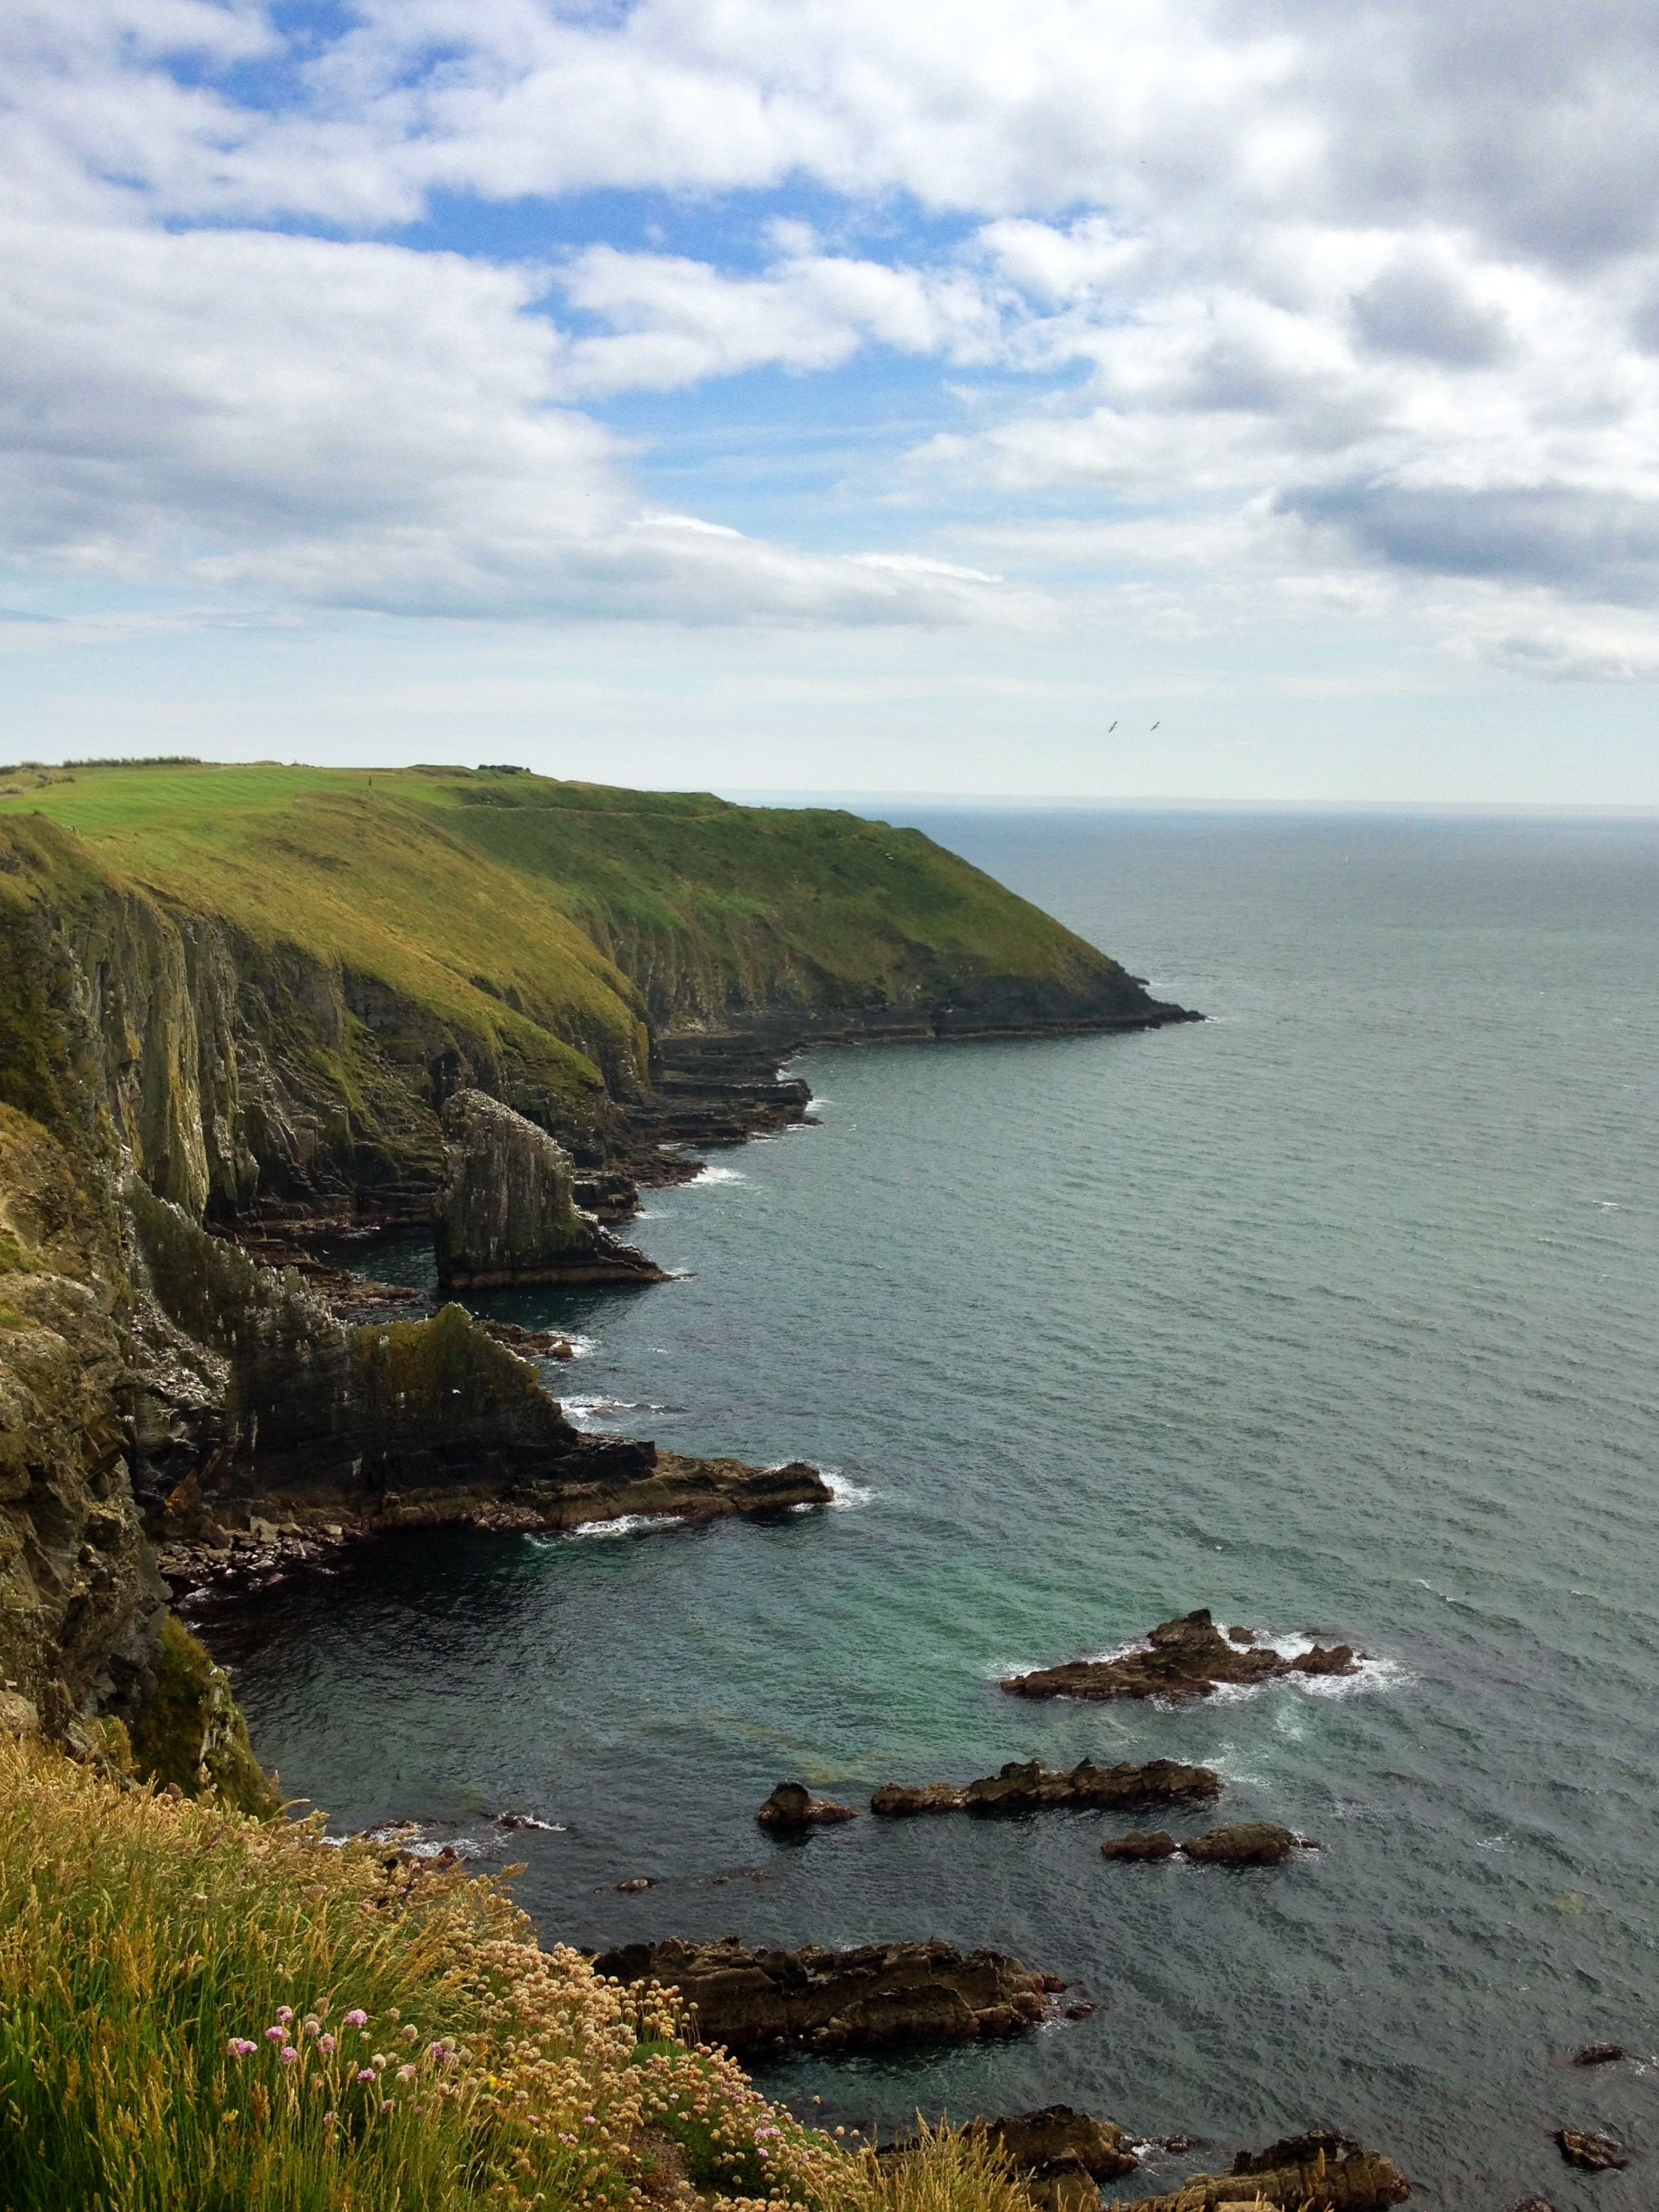 Old Head Cliffs, Kinsale Ireland